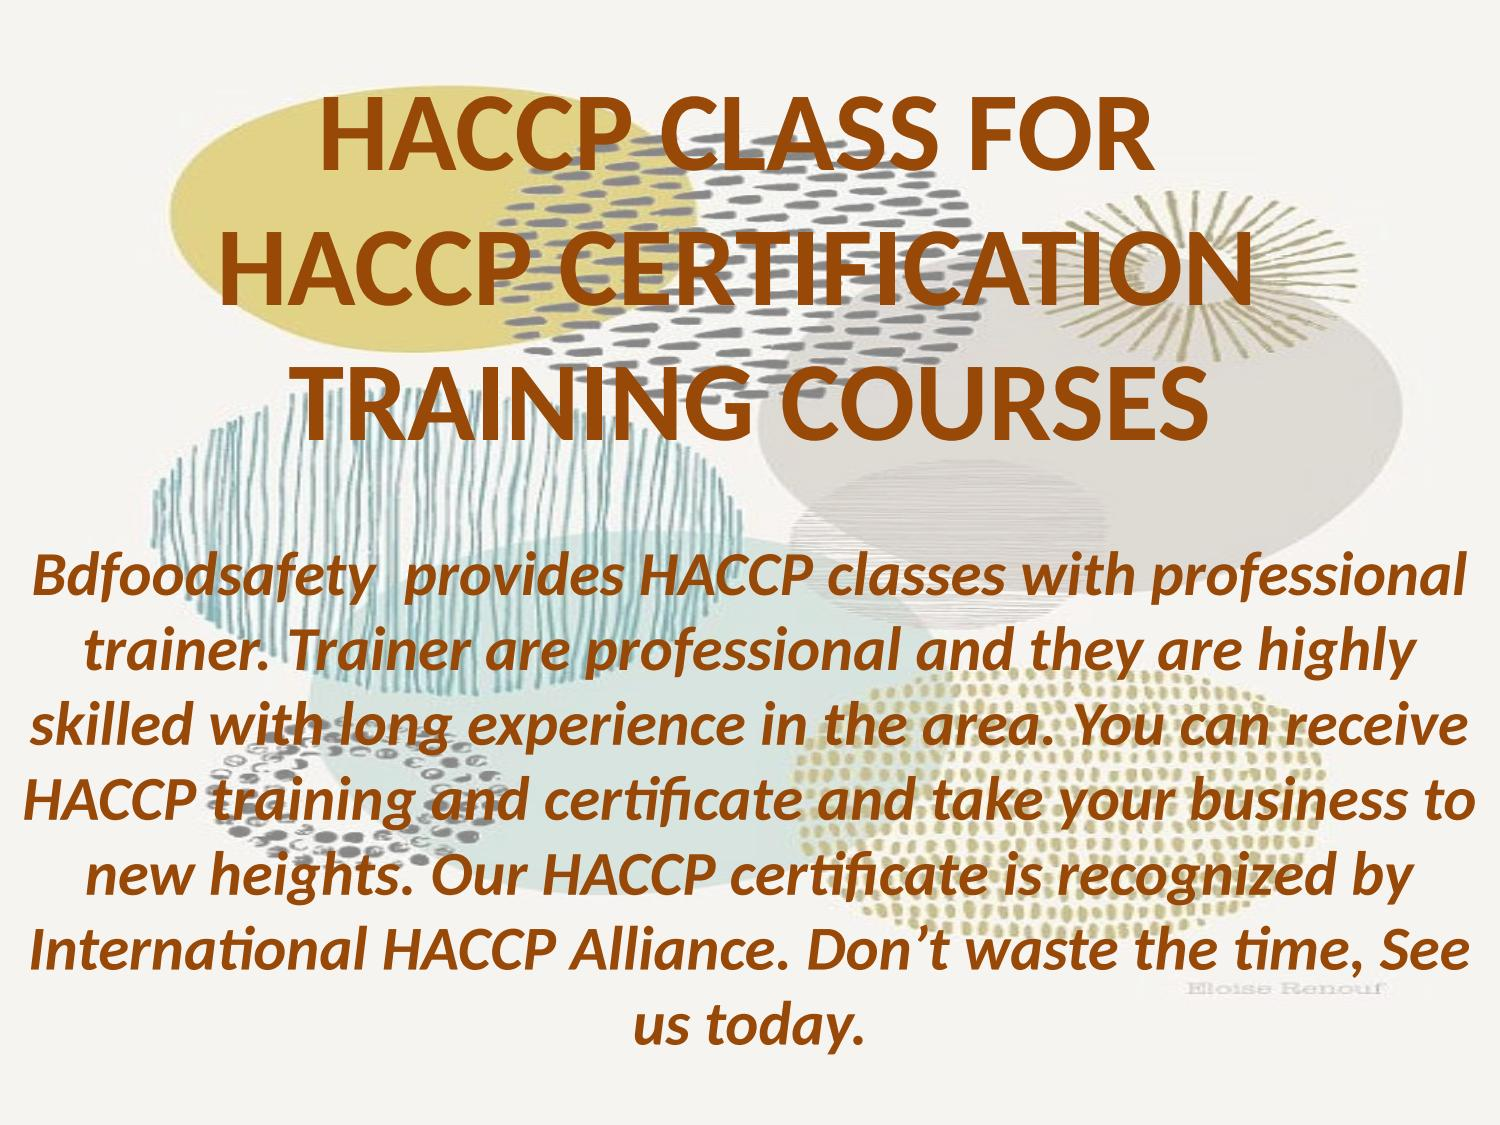 Haccp Class For Haccp Certification Training Courses By Bd Food